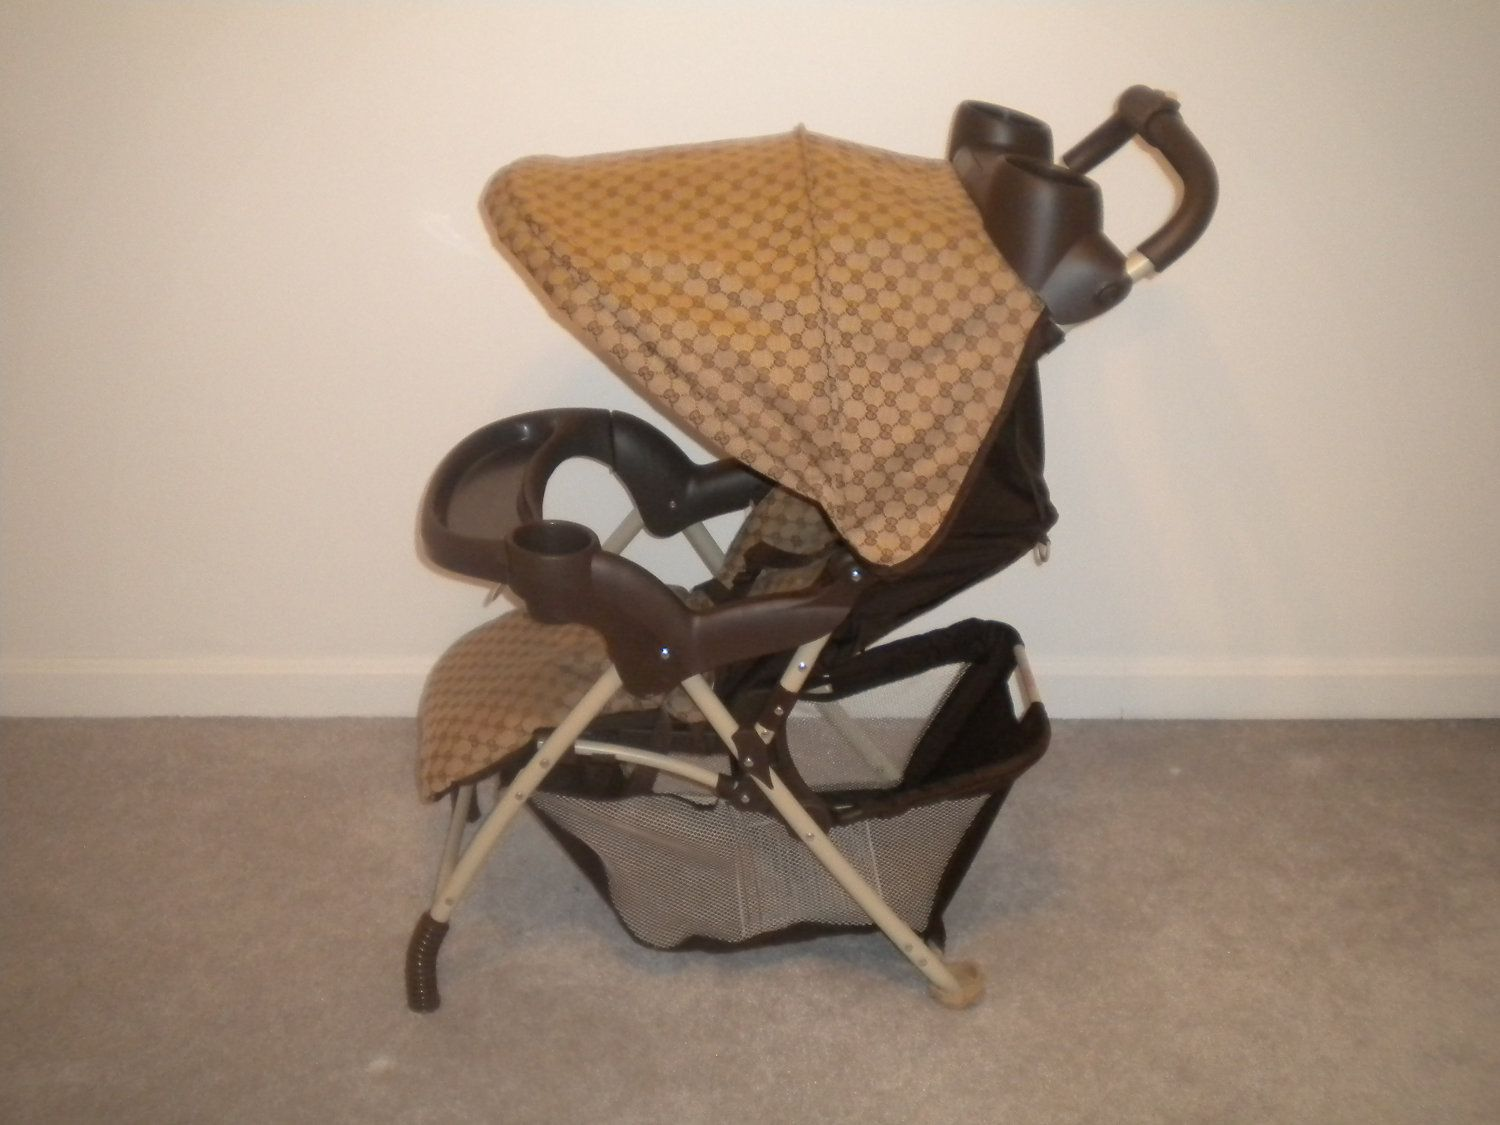 Gucci Baby Stroller By Diamondcouture On Etsy 35000 Dr Brownamp039s Zebra Lovey With Pink One Piece Pacifier Dot Bayi